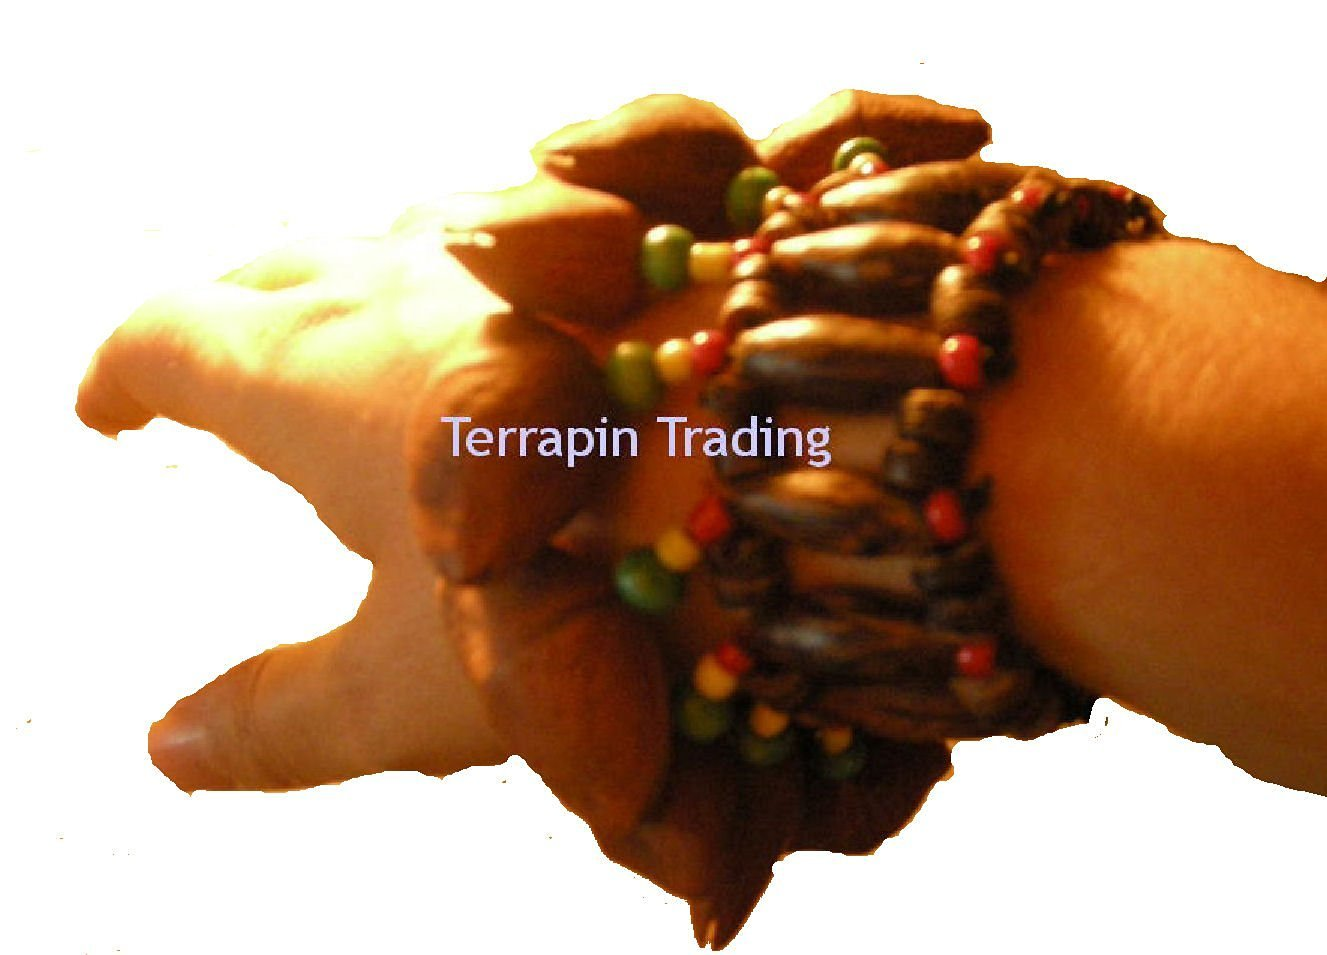 Fair Trade Amazonian Shaman Calabash Wrist / Leg Rattle made from Tapar Tree Nuts Terrapin Trading